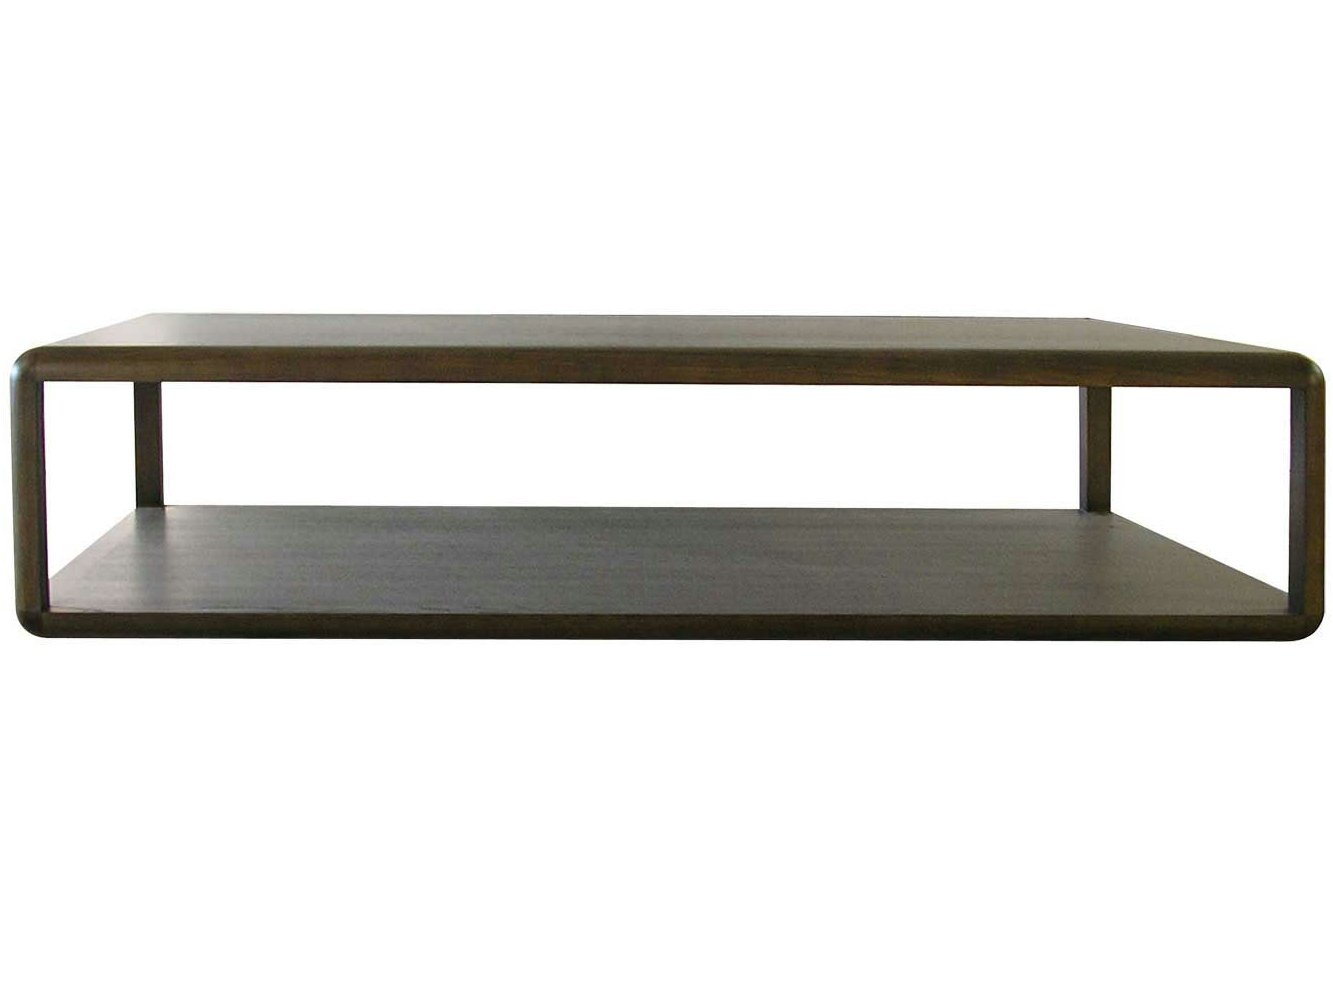 Rive Droite Table Basse By Roche Bobois Design Christophe Delcourt